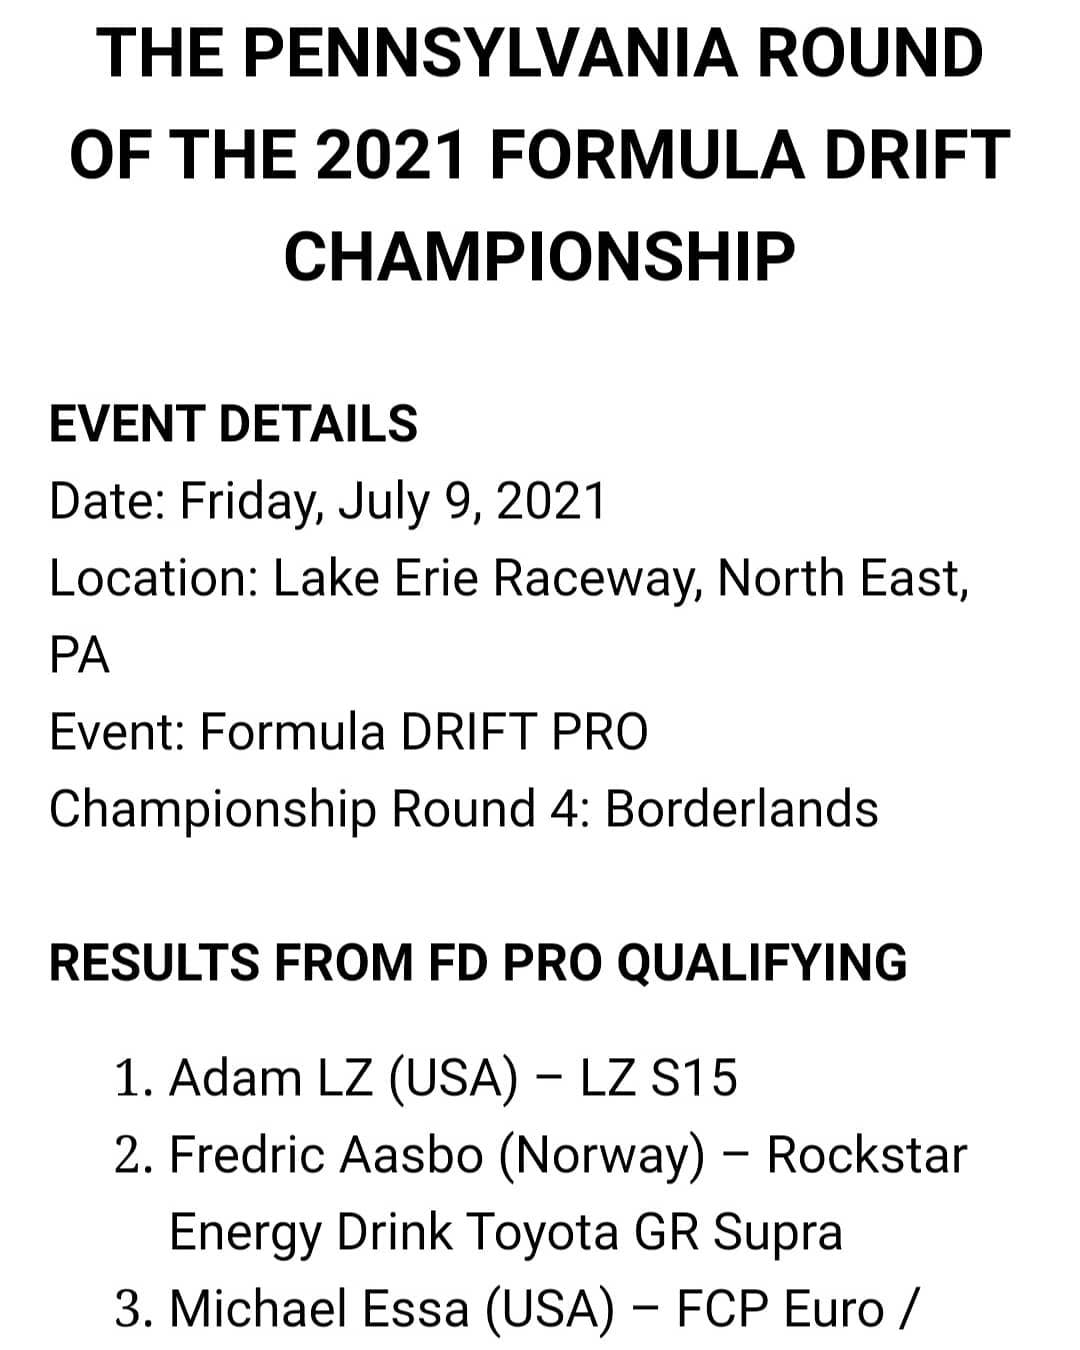 Qualifying Results from the Pennsylvania Round of the 2021 Formula DRIFT Championship